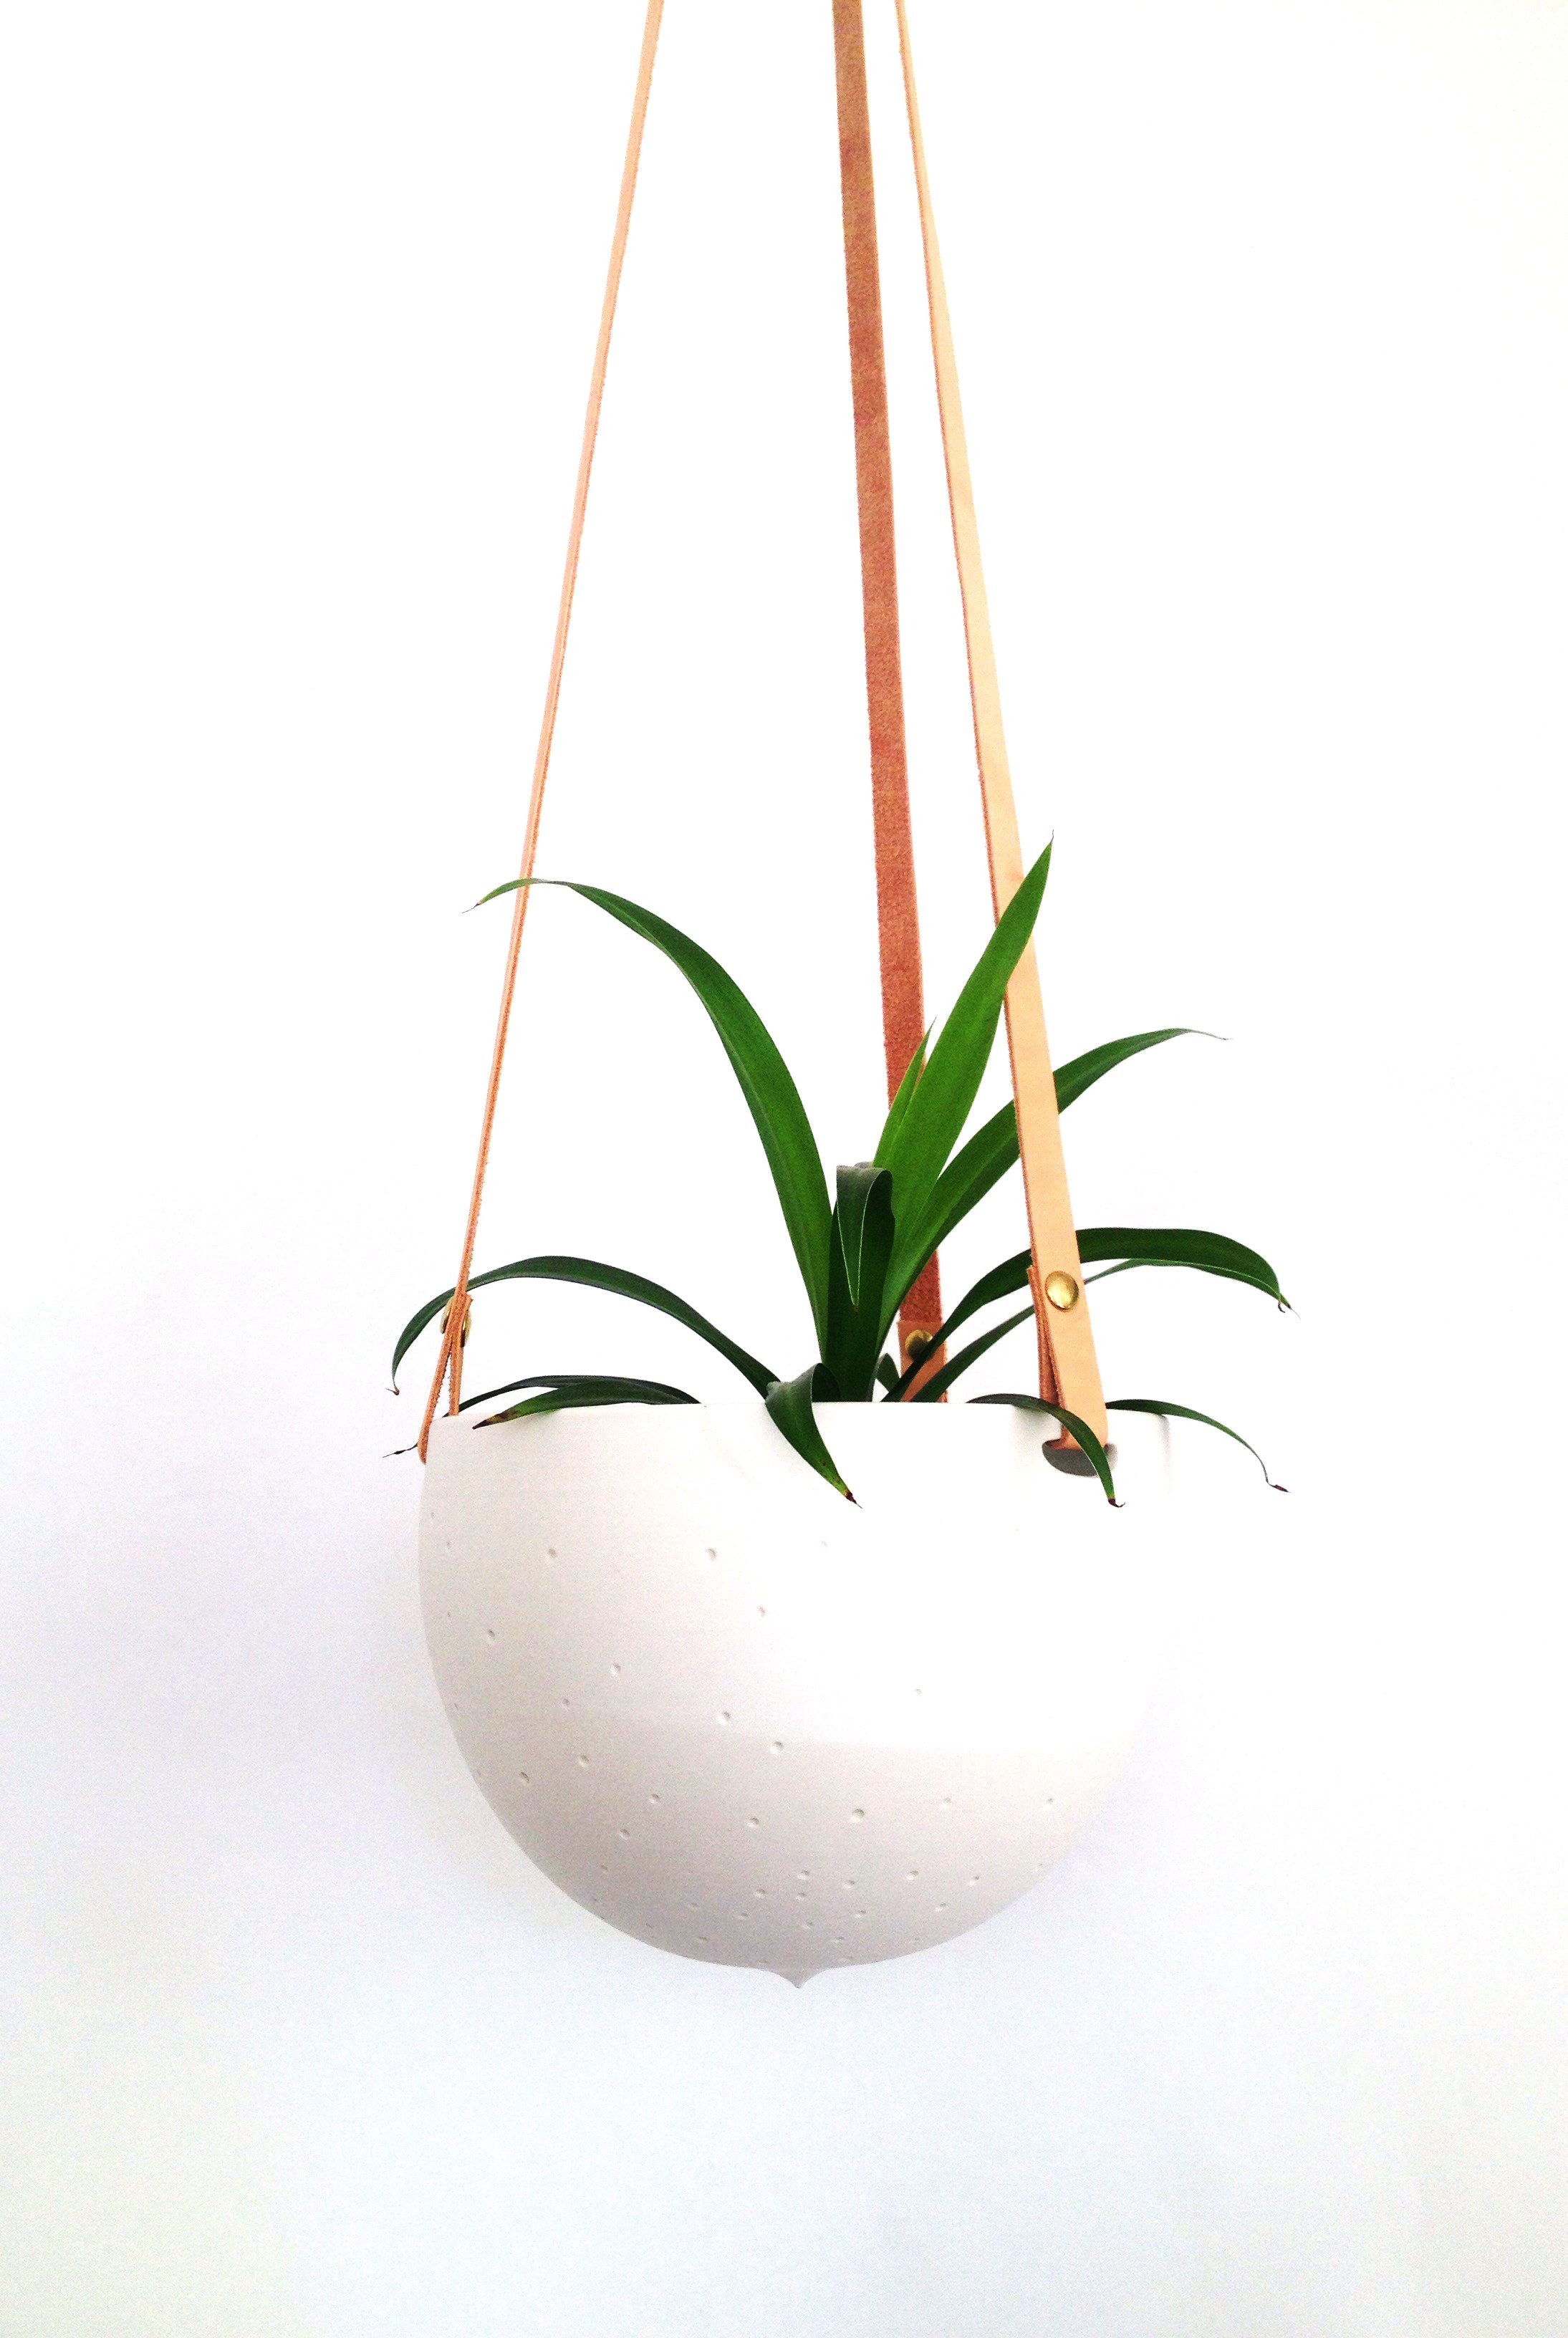 Ceramic and recycled leather hanging planter $95 by Rachel Dhawan & Aaron Reaume, Blisscraft & Brazen in collaboration with Wai-Yant Li, Créations Li